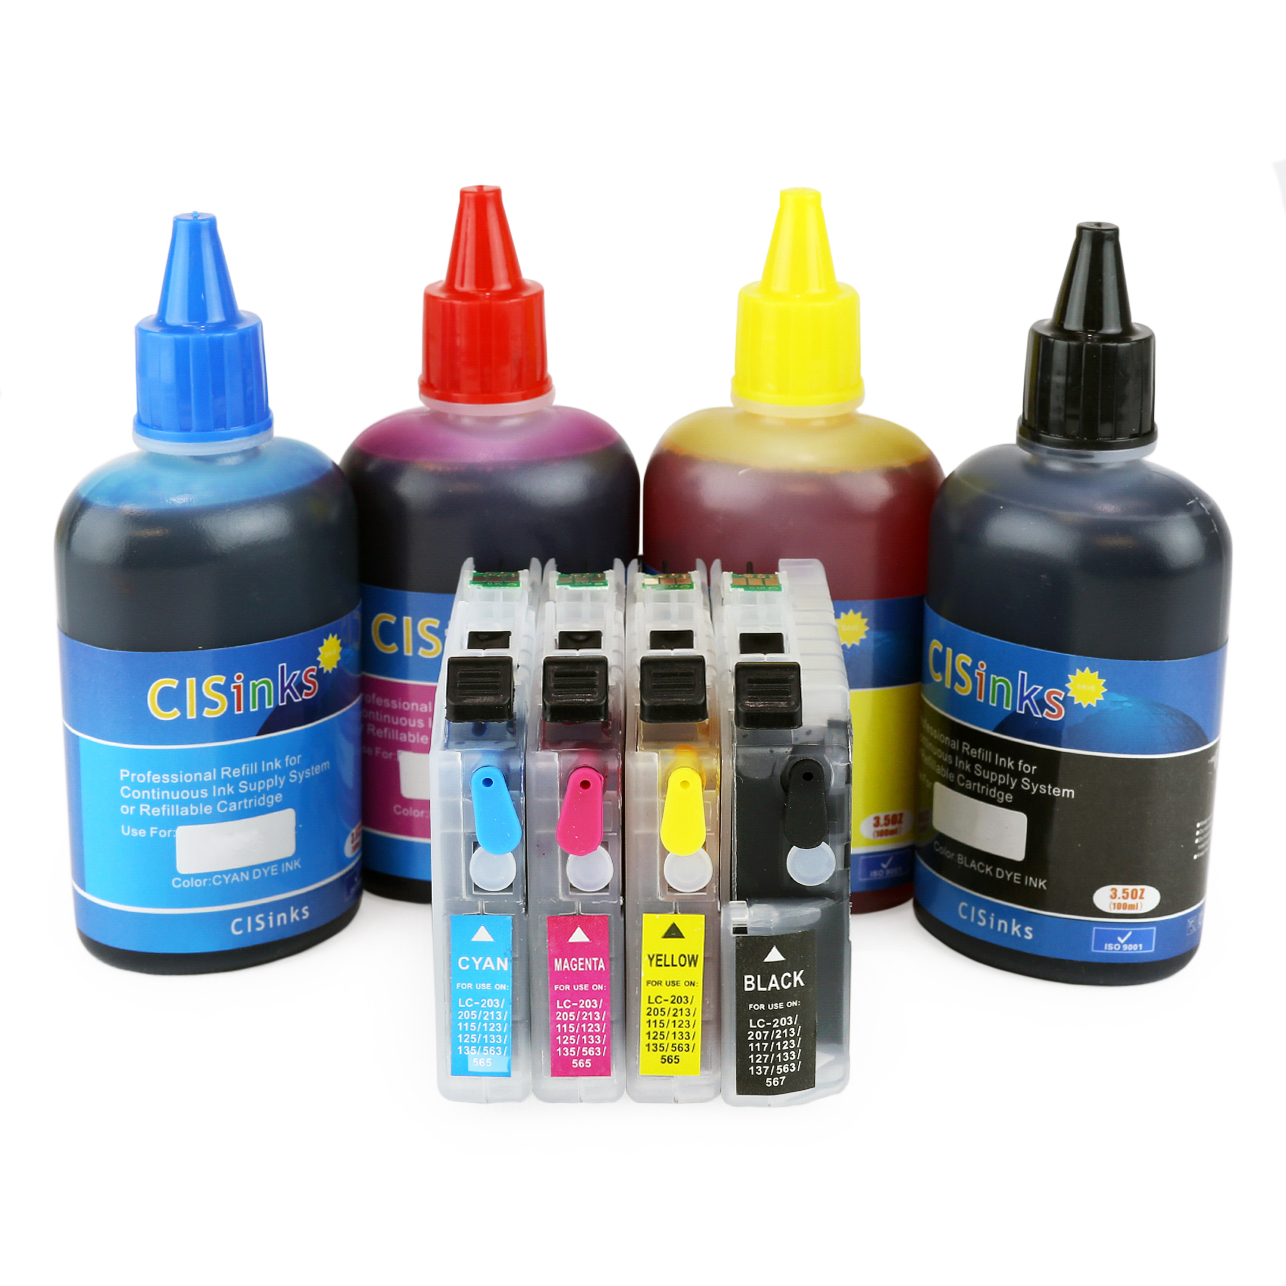 [Refillable Ink Cartridge KIT] for Brother LC203 MFC-J4320DW MFC-J4420DW MFC-J4620DW MFC-J5520DW MFC-J5620DW MFC-J5720DW MFC-J460DW MFC-J480DW MFC-J485DW MFC-J680DW MFC-J880DW MFC-J885DW MFC-J4625DW MFC-J5320DW HL-2275DW